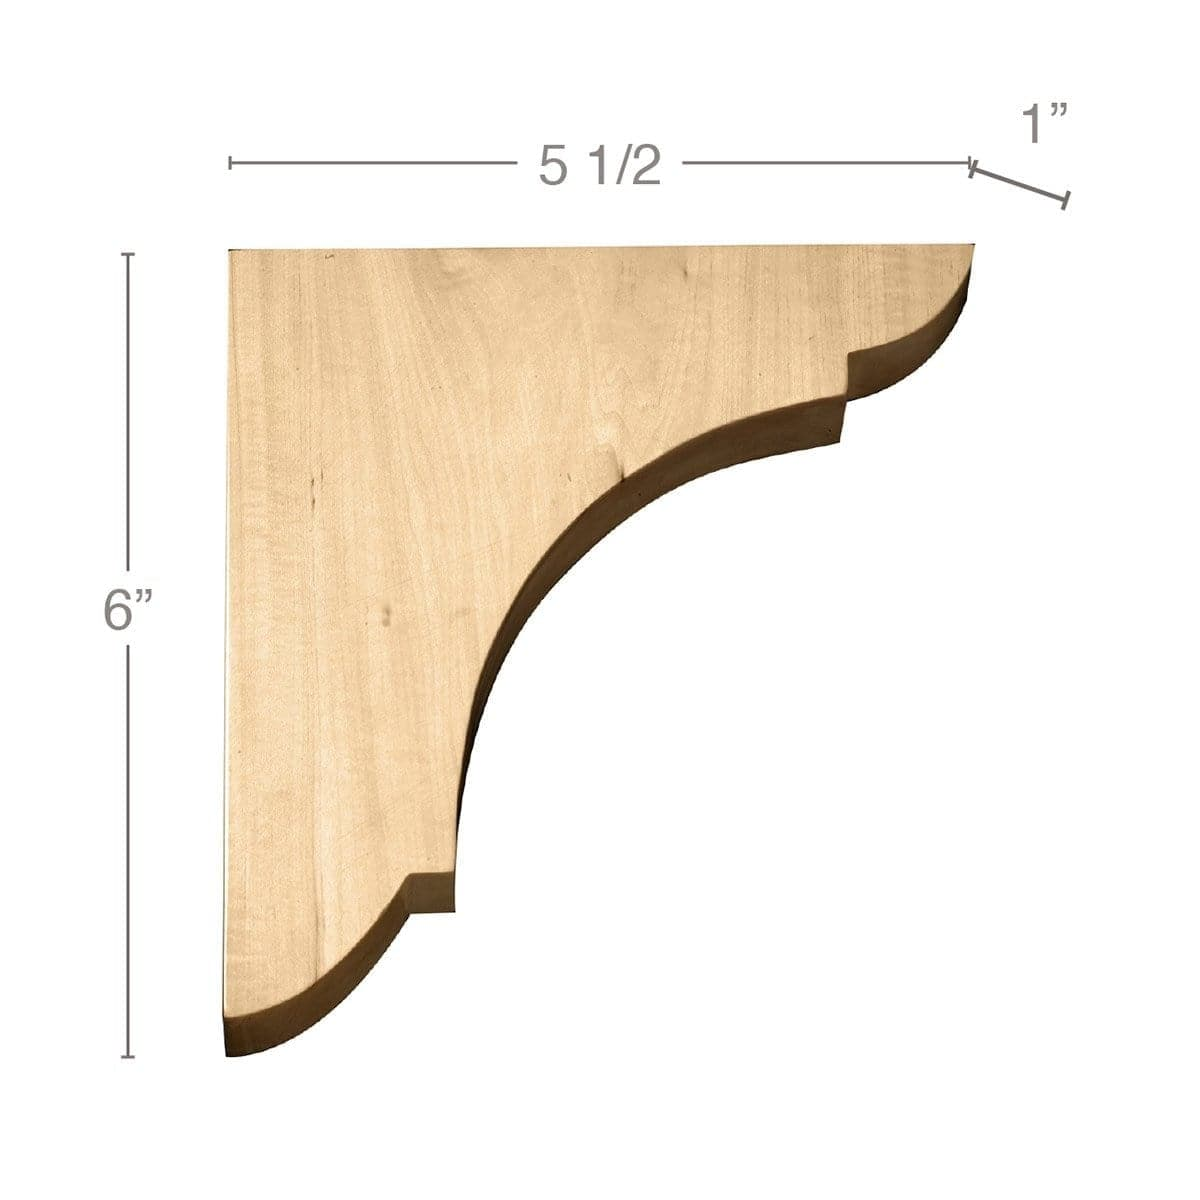 "Medium Wall Bracket, 1""w x 6""h x 5 1/2""d"